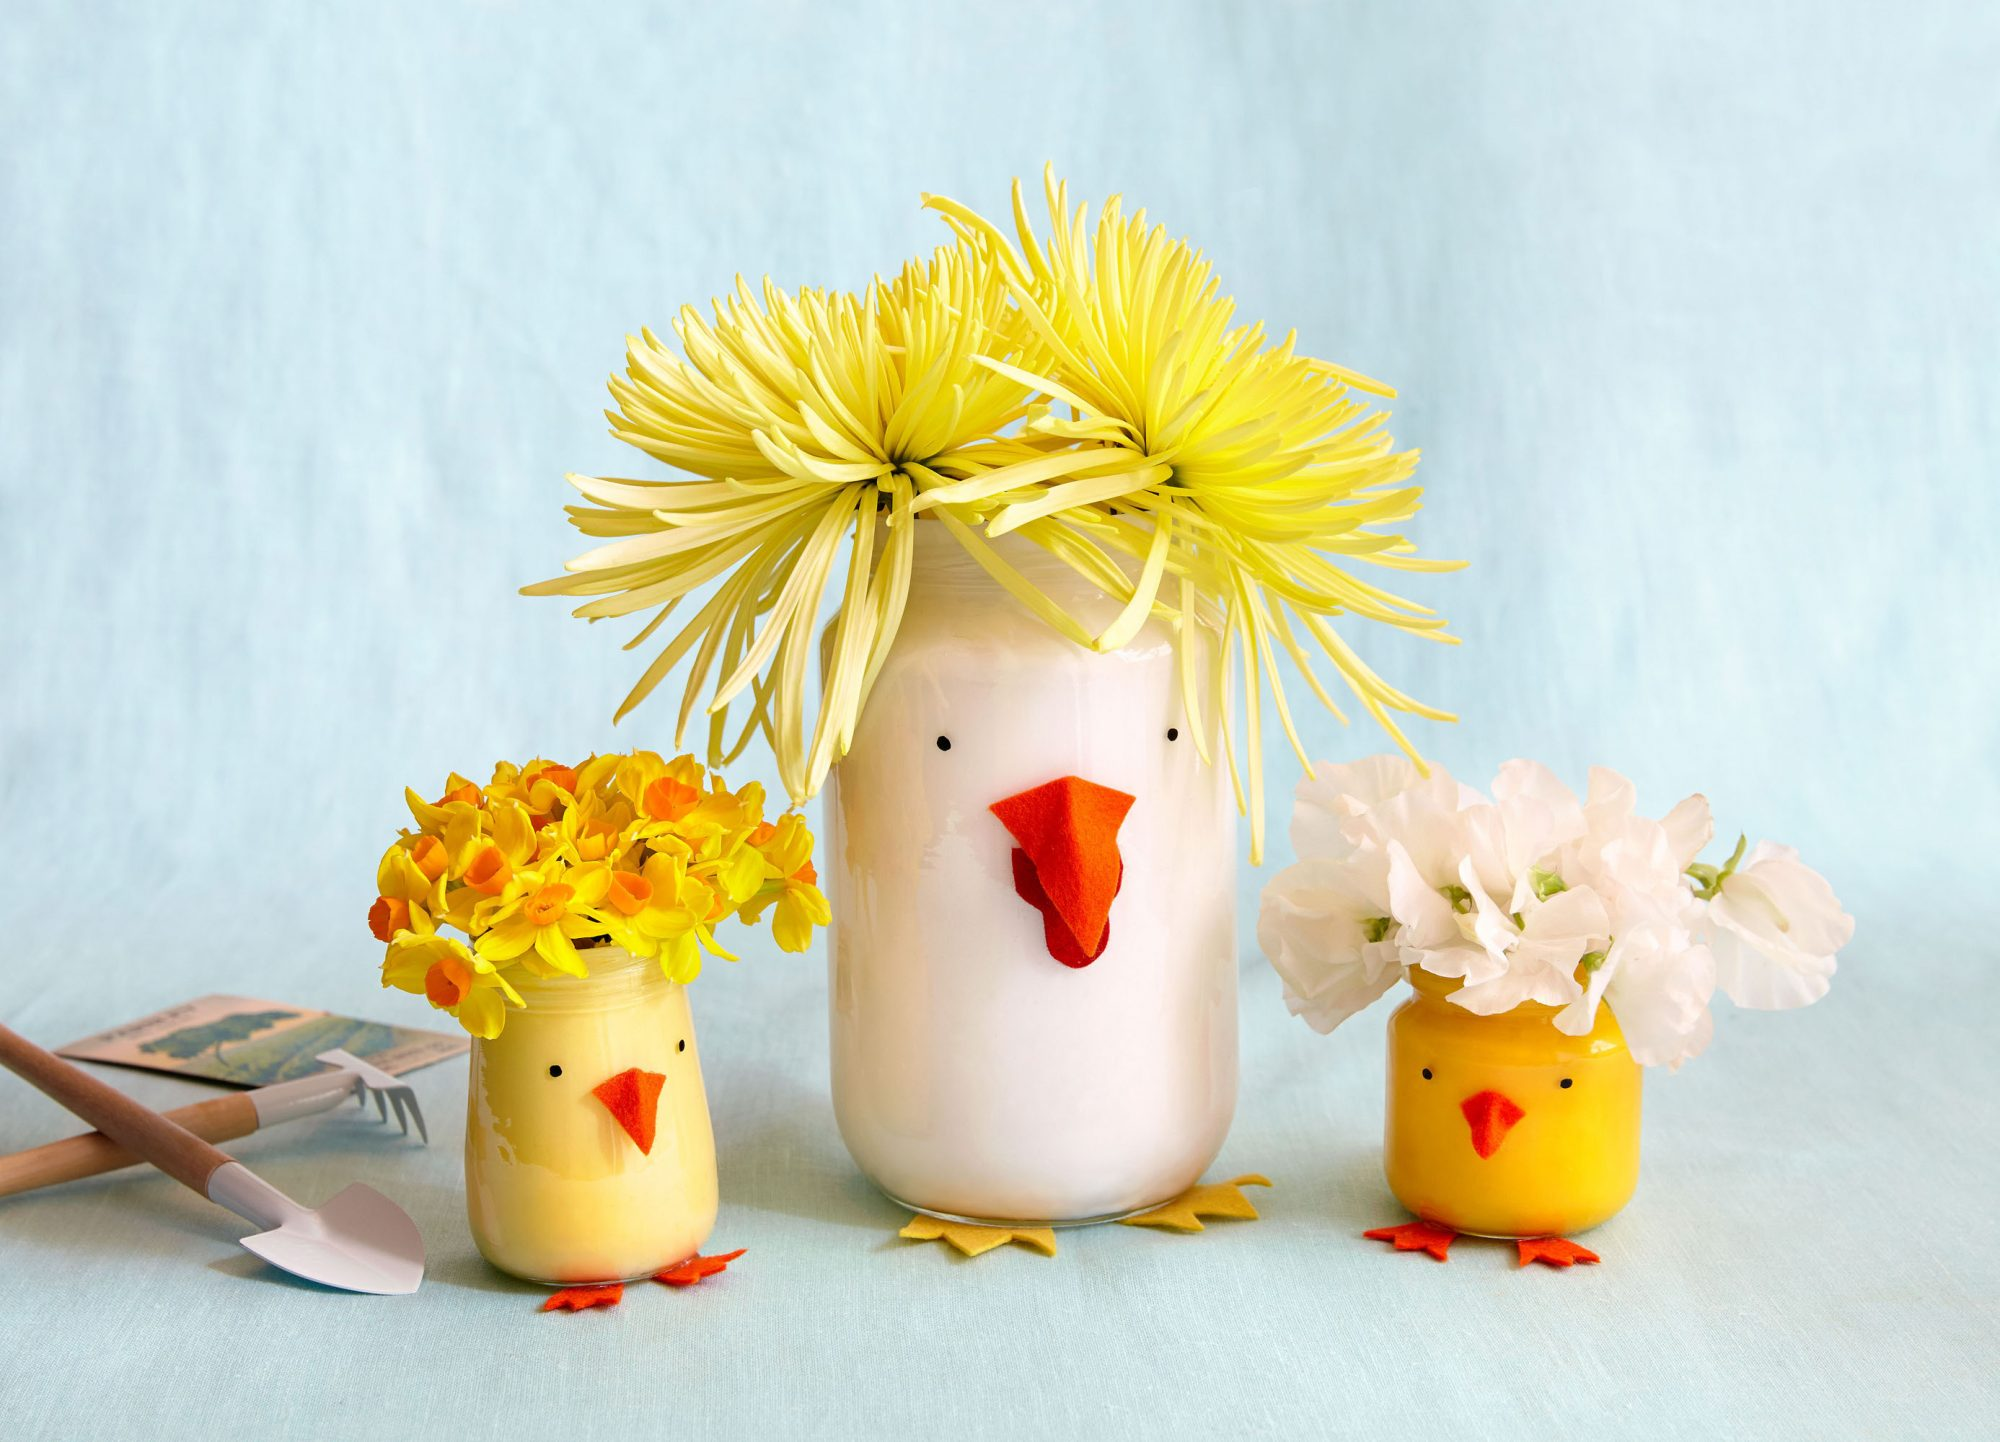 large white chicken little jar and two small yellow chicken little jars